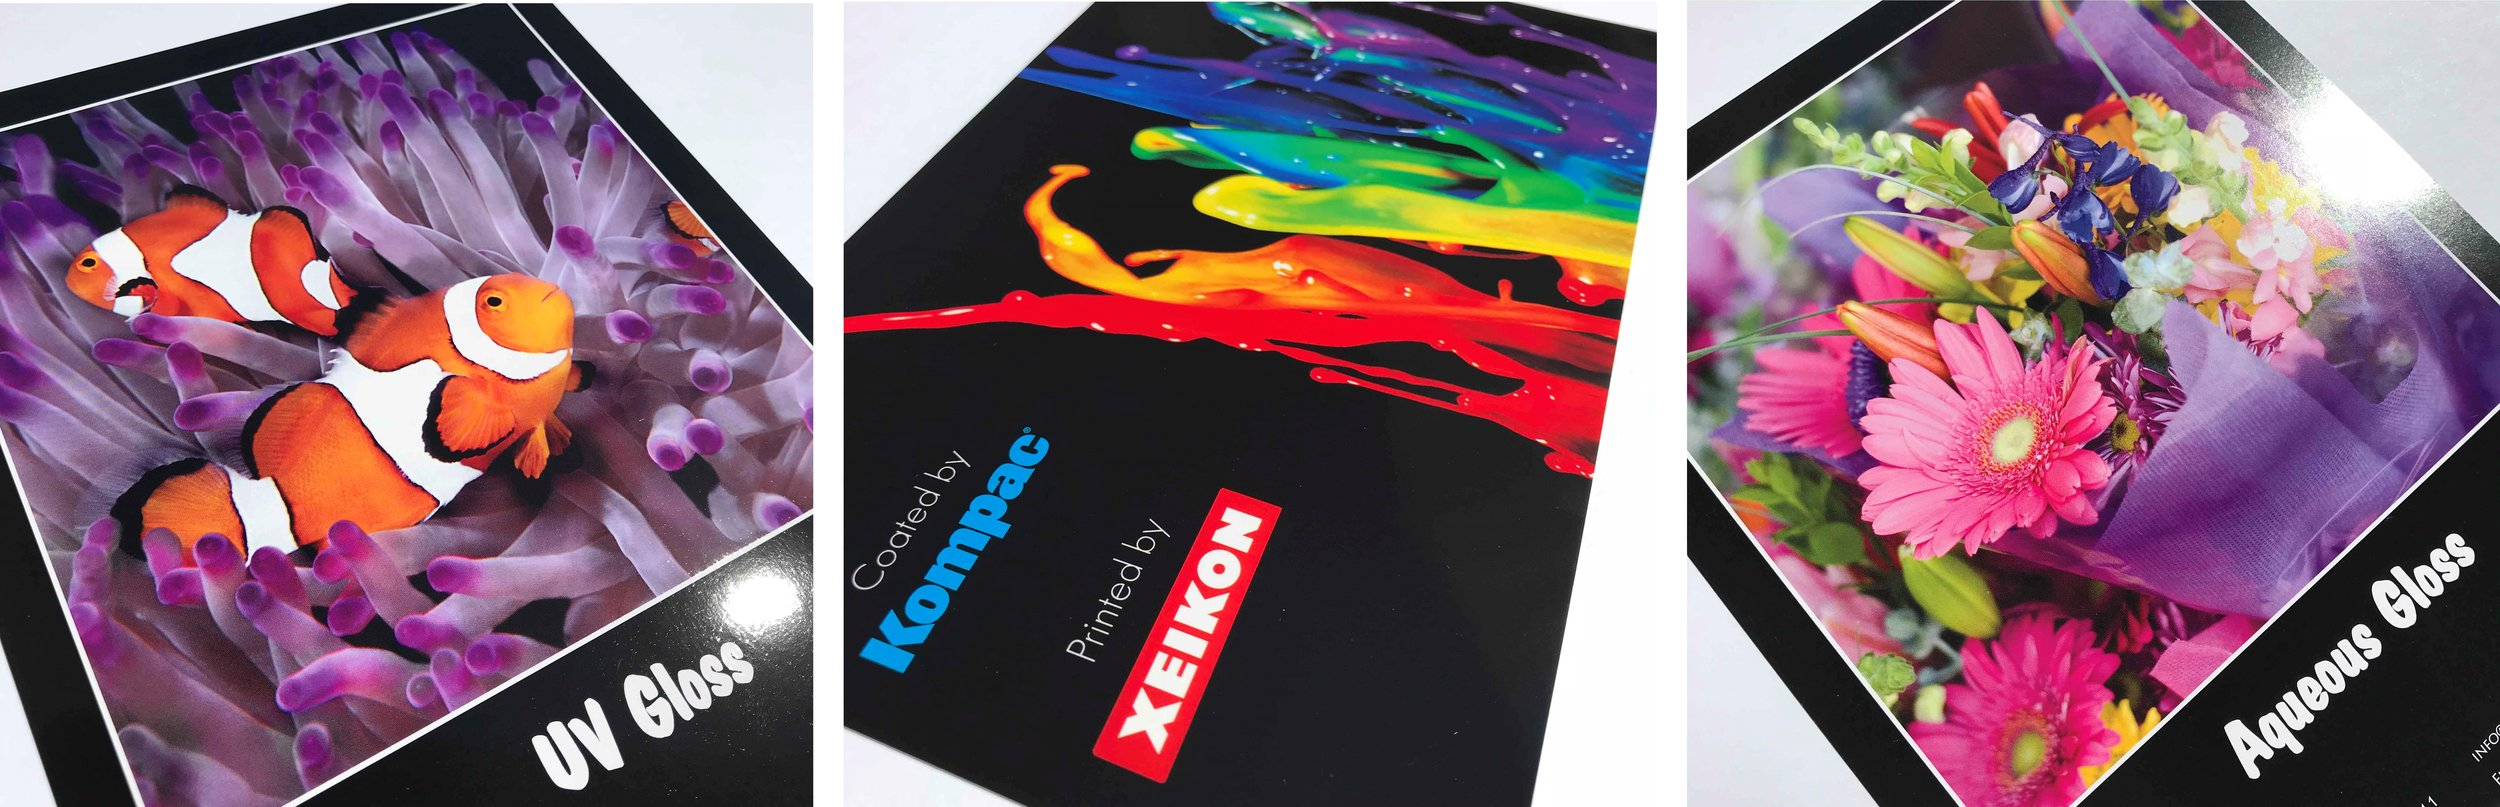 Pictured Left to Right:  UV gloss flood coating,sample printed by Xeikon and UV high gloss flood coating by Kompac, aqueous gloss flood coating